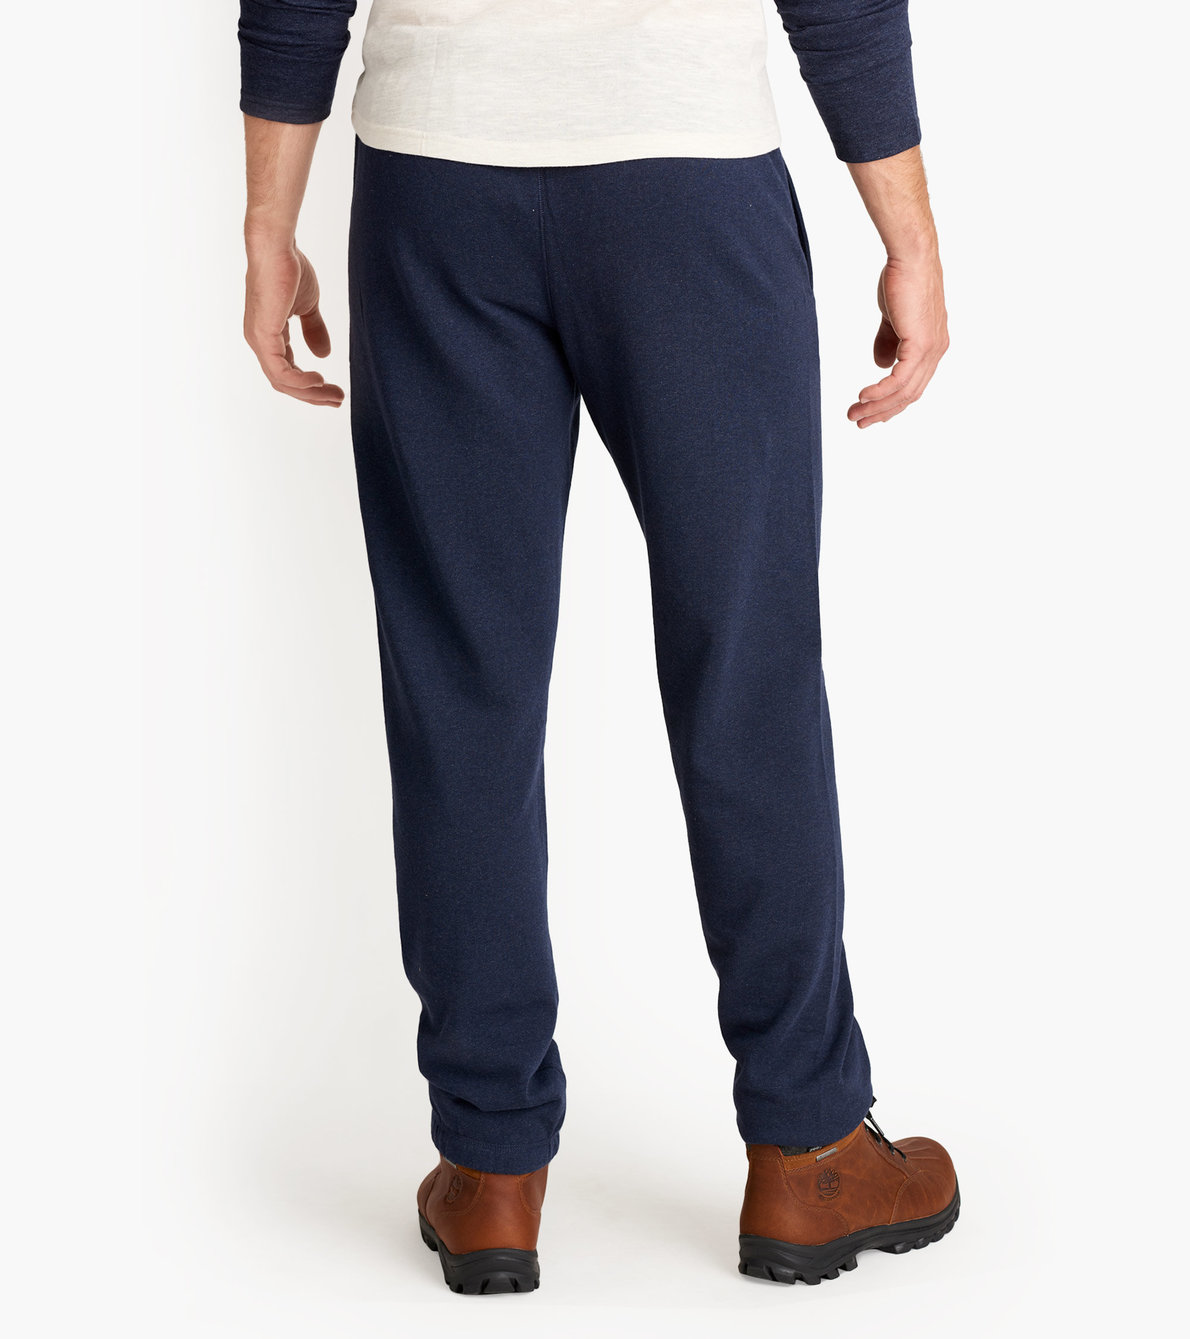 View larger image of Blue Melange Moose Men's Heritage Joggers